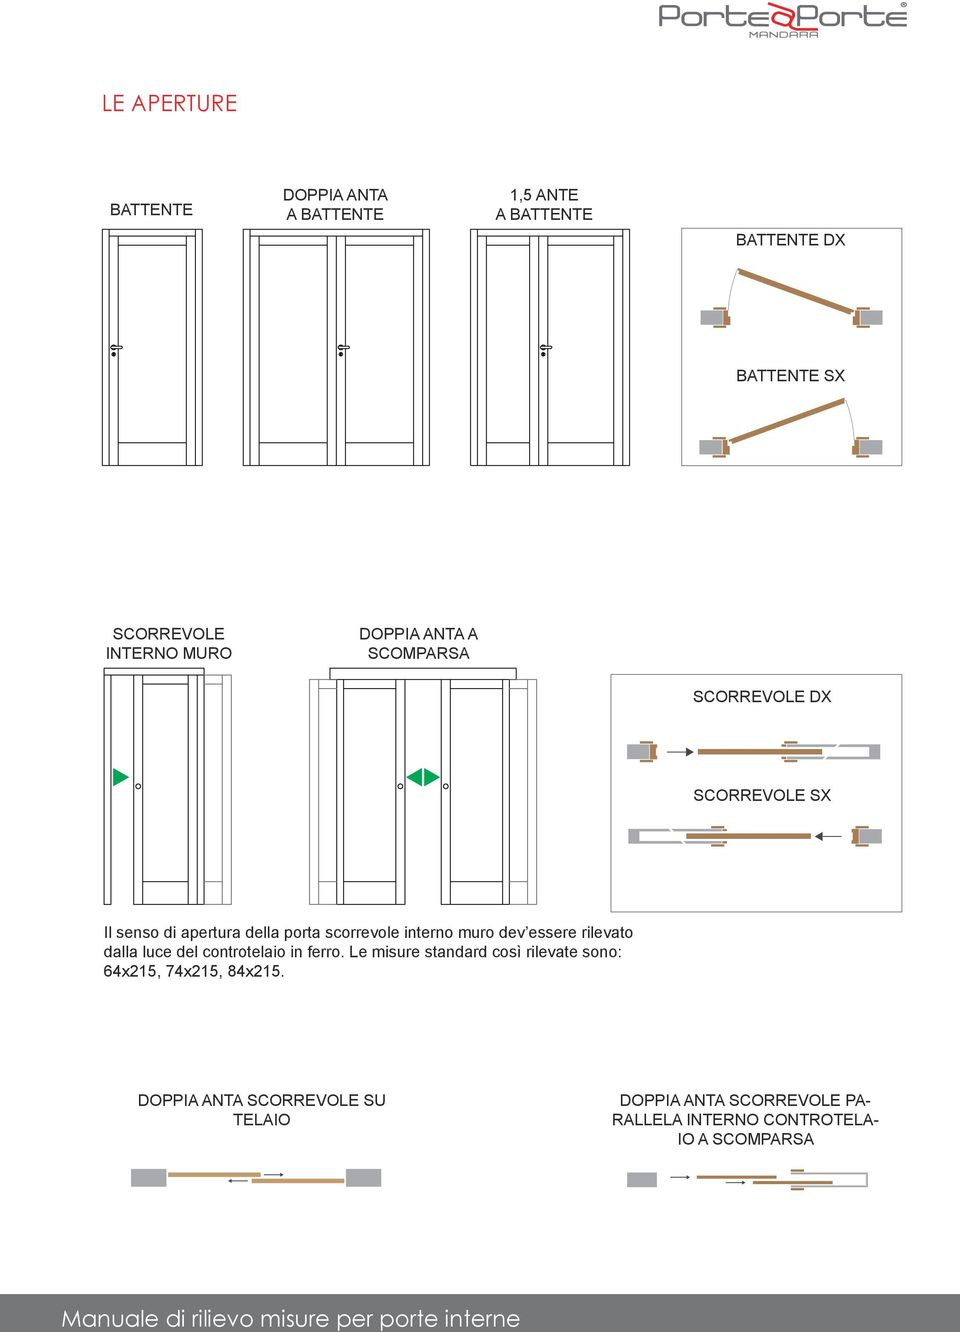 Porte Interne Misure Standard.Manuale Di Rilievo Misure Per Porte Intene Pdf Download